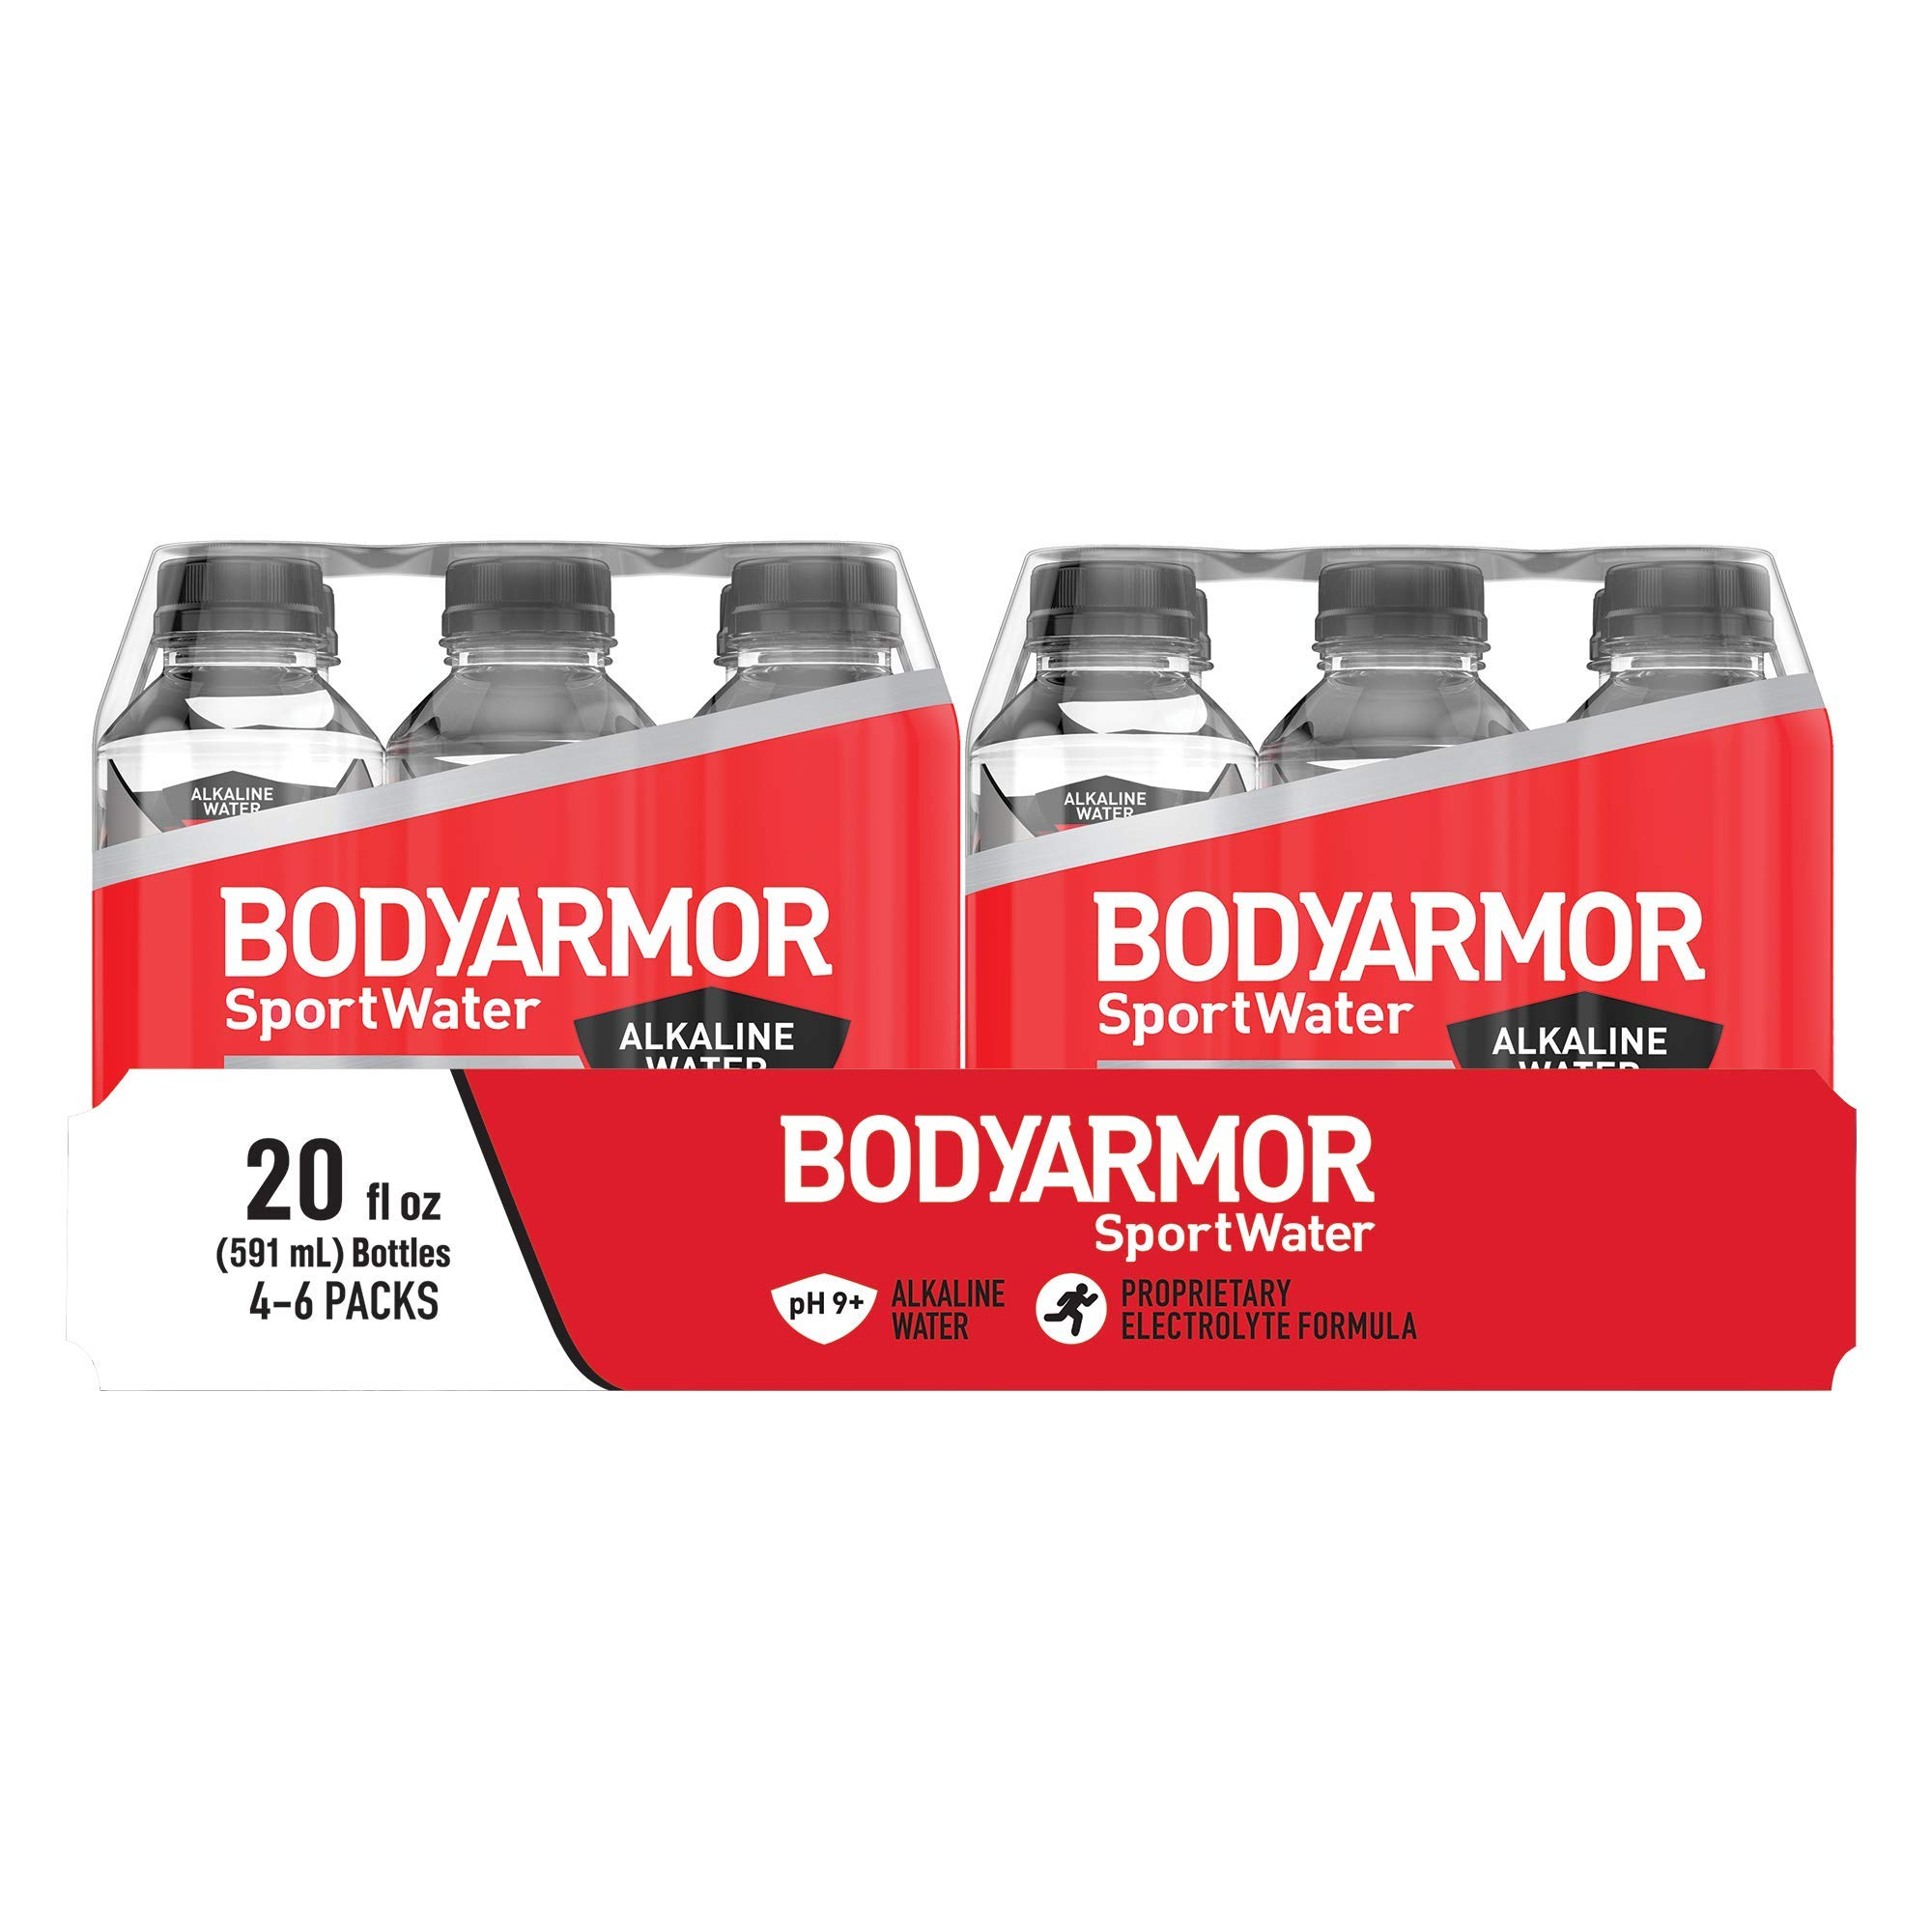 BODYARMOR SportWater Alkaline Water, Superior Hydration, High Alkaline Water pH 9+, Electrolytes, Perfect for your Active Lifestyle, 20 Fl Oz (4 Pack, Case of 6)